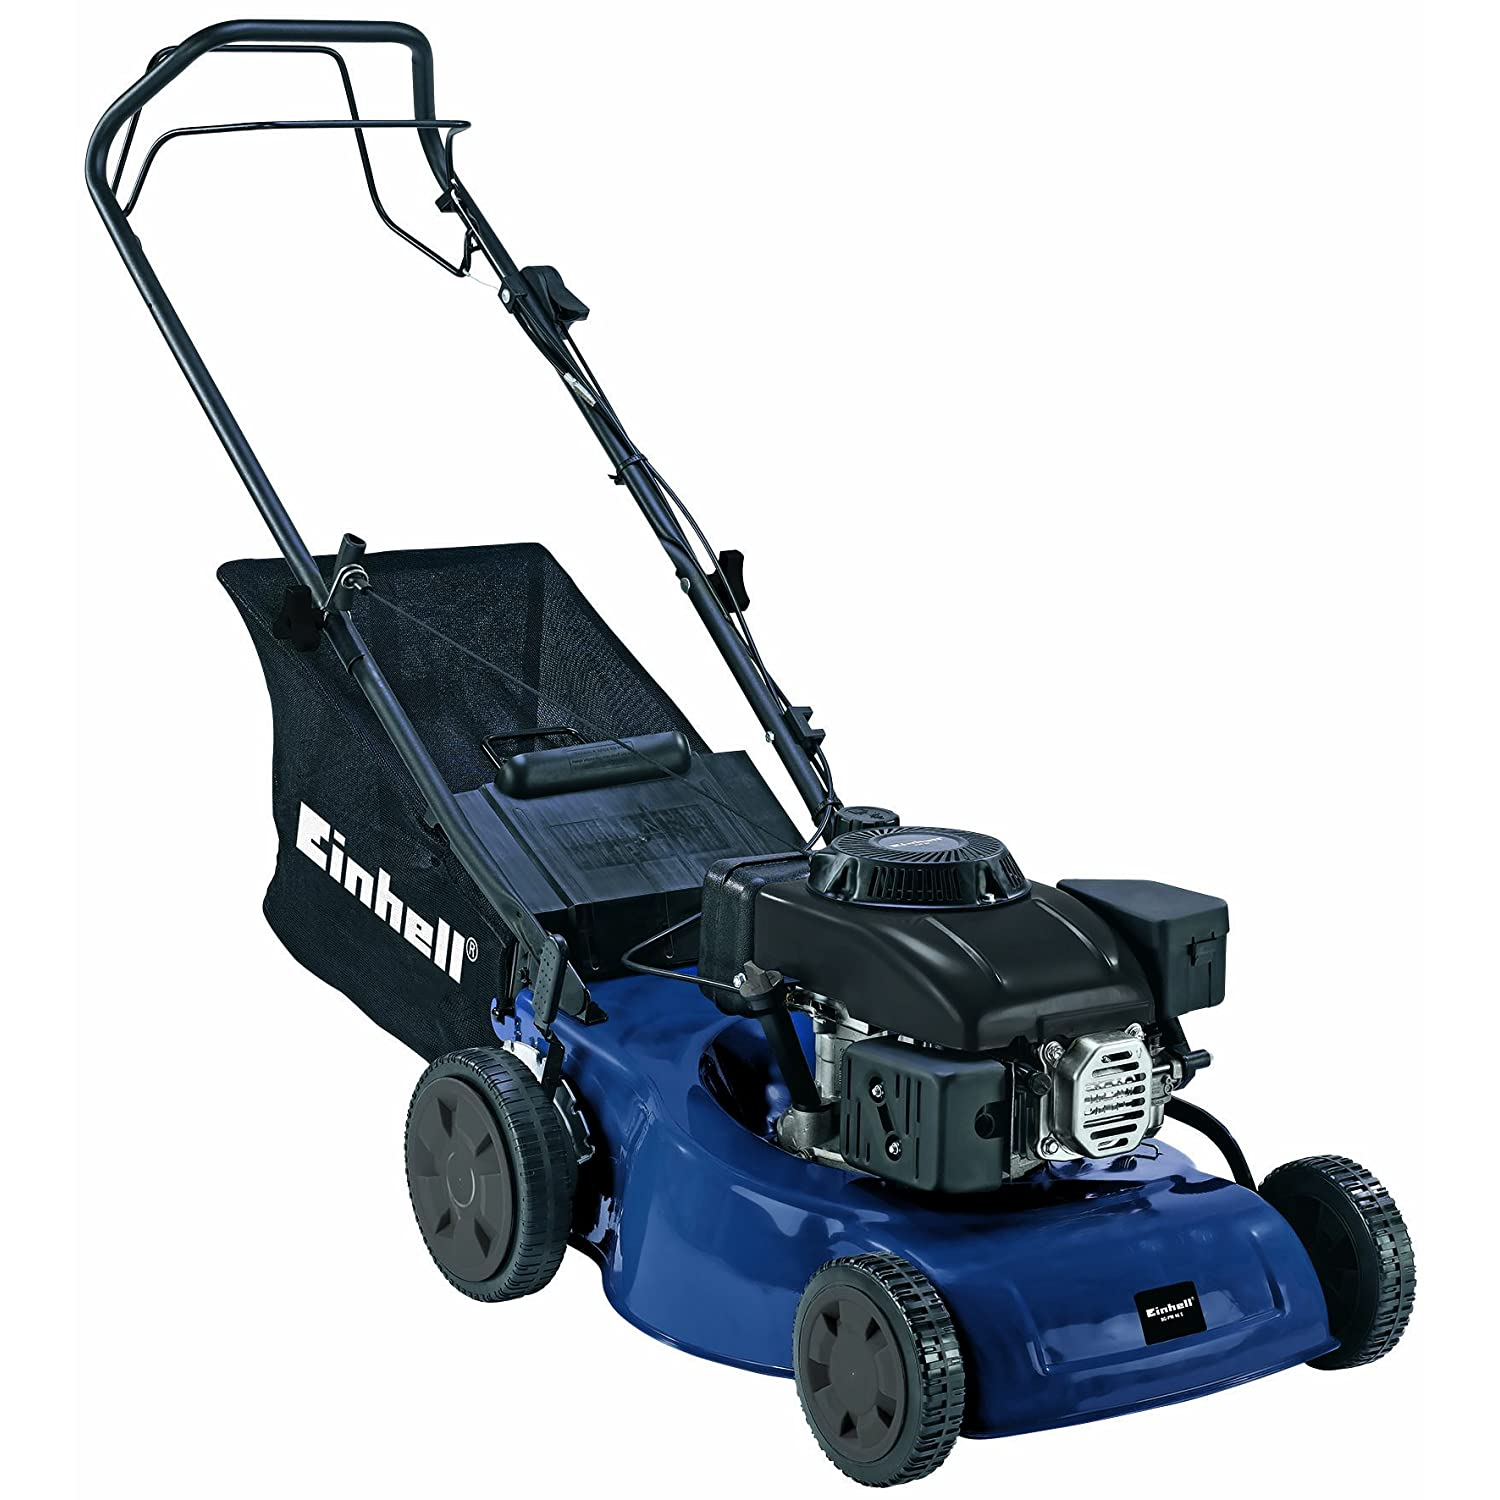 Picture Of A Lawn Mower >> Lawn Mower : Cylinders Hovers Rotaries